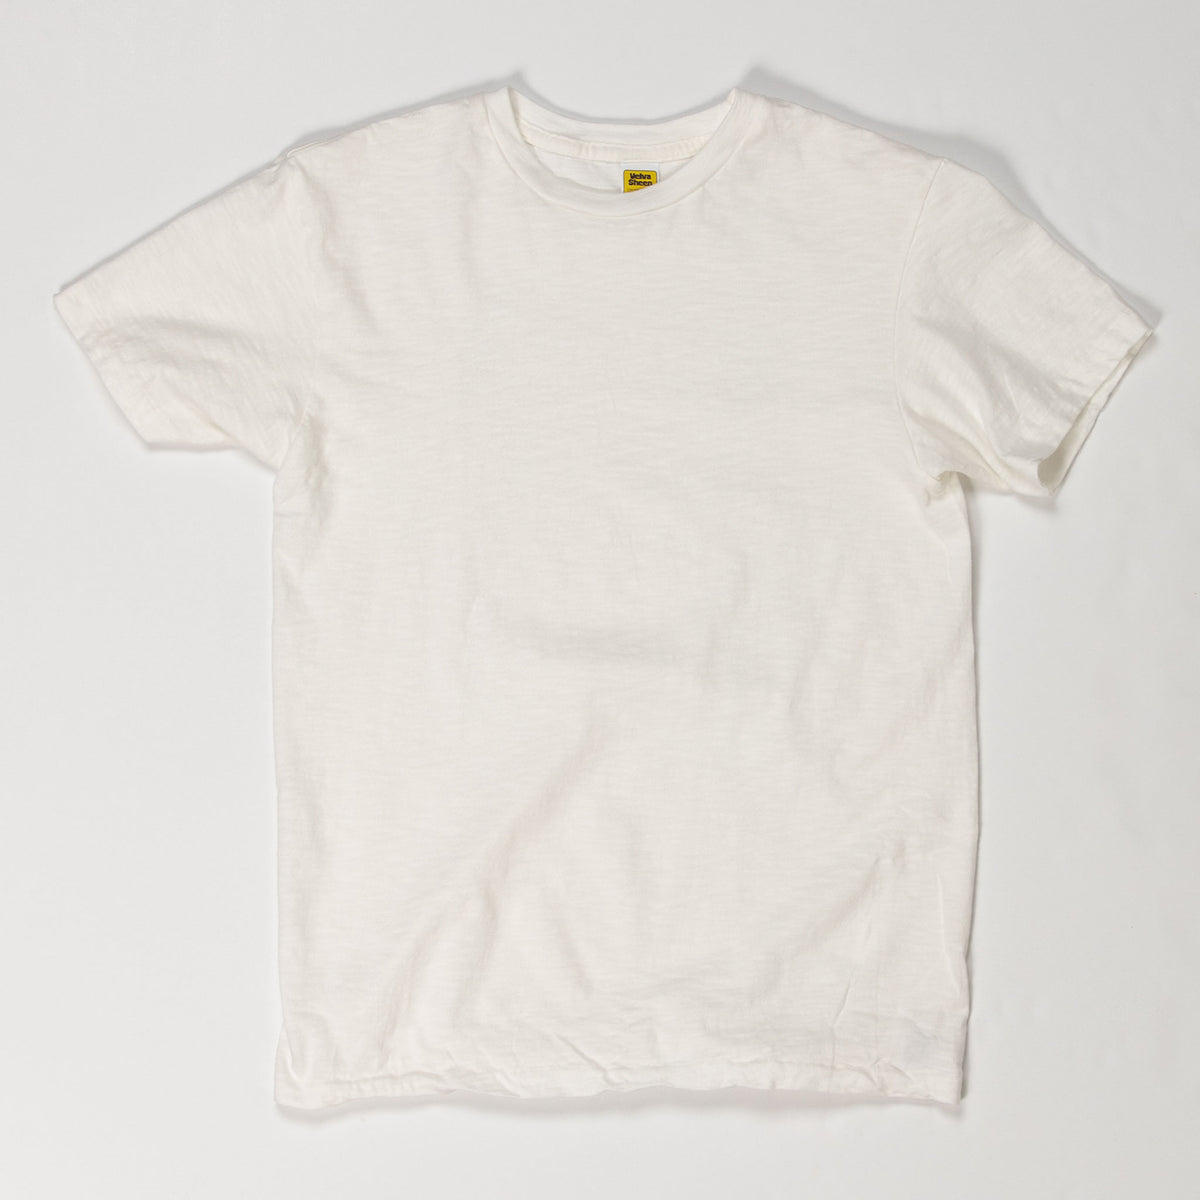 Regular Short Sleeve Tee - White